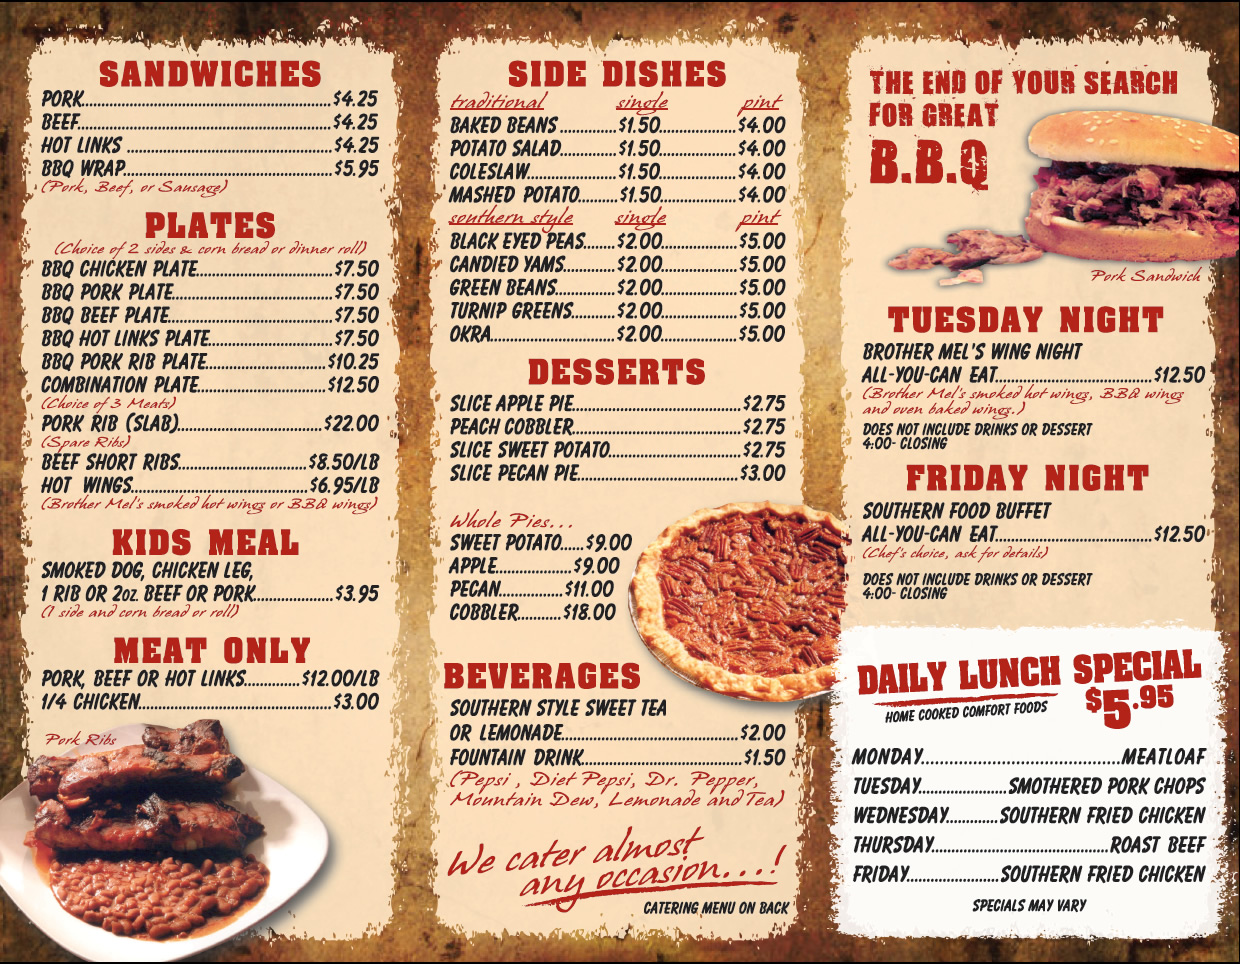 templates for restaurant menus - 14 design your own restaurant menu images create your